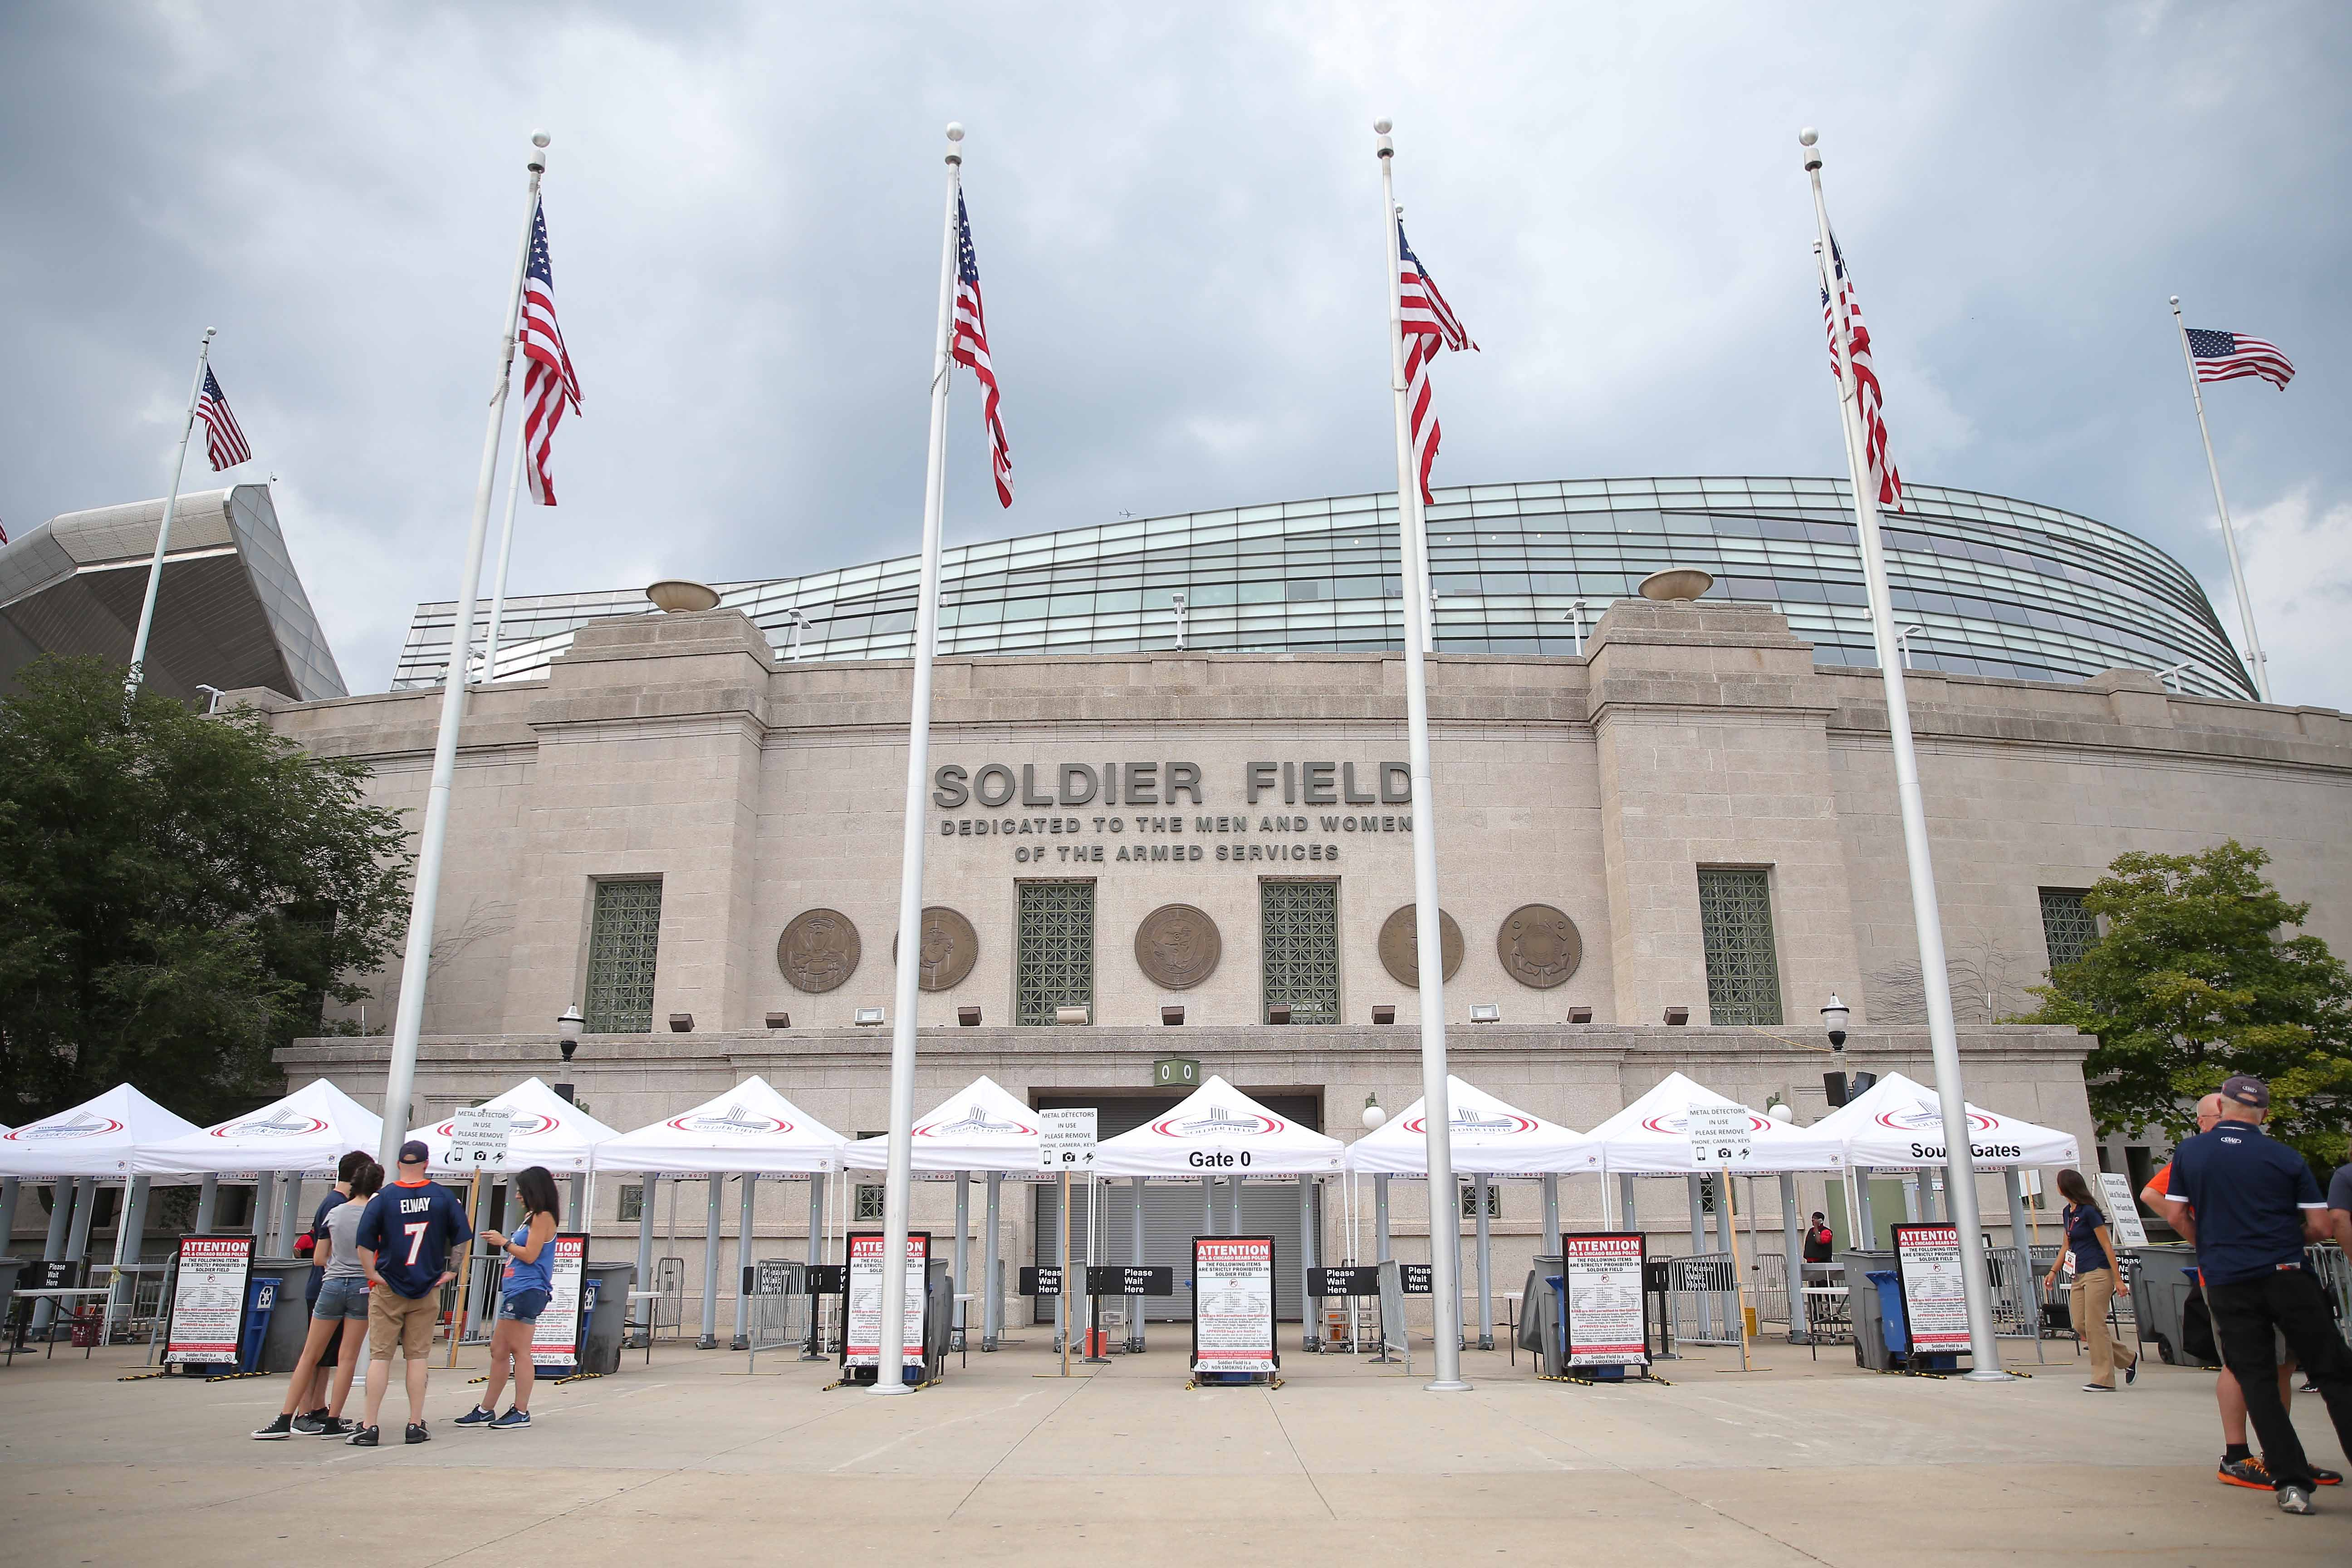 Fire breaks out near Chicago Bears' Soldier Field after propane tank explosion ignites tent